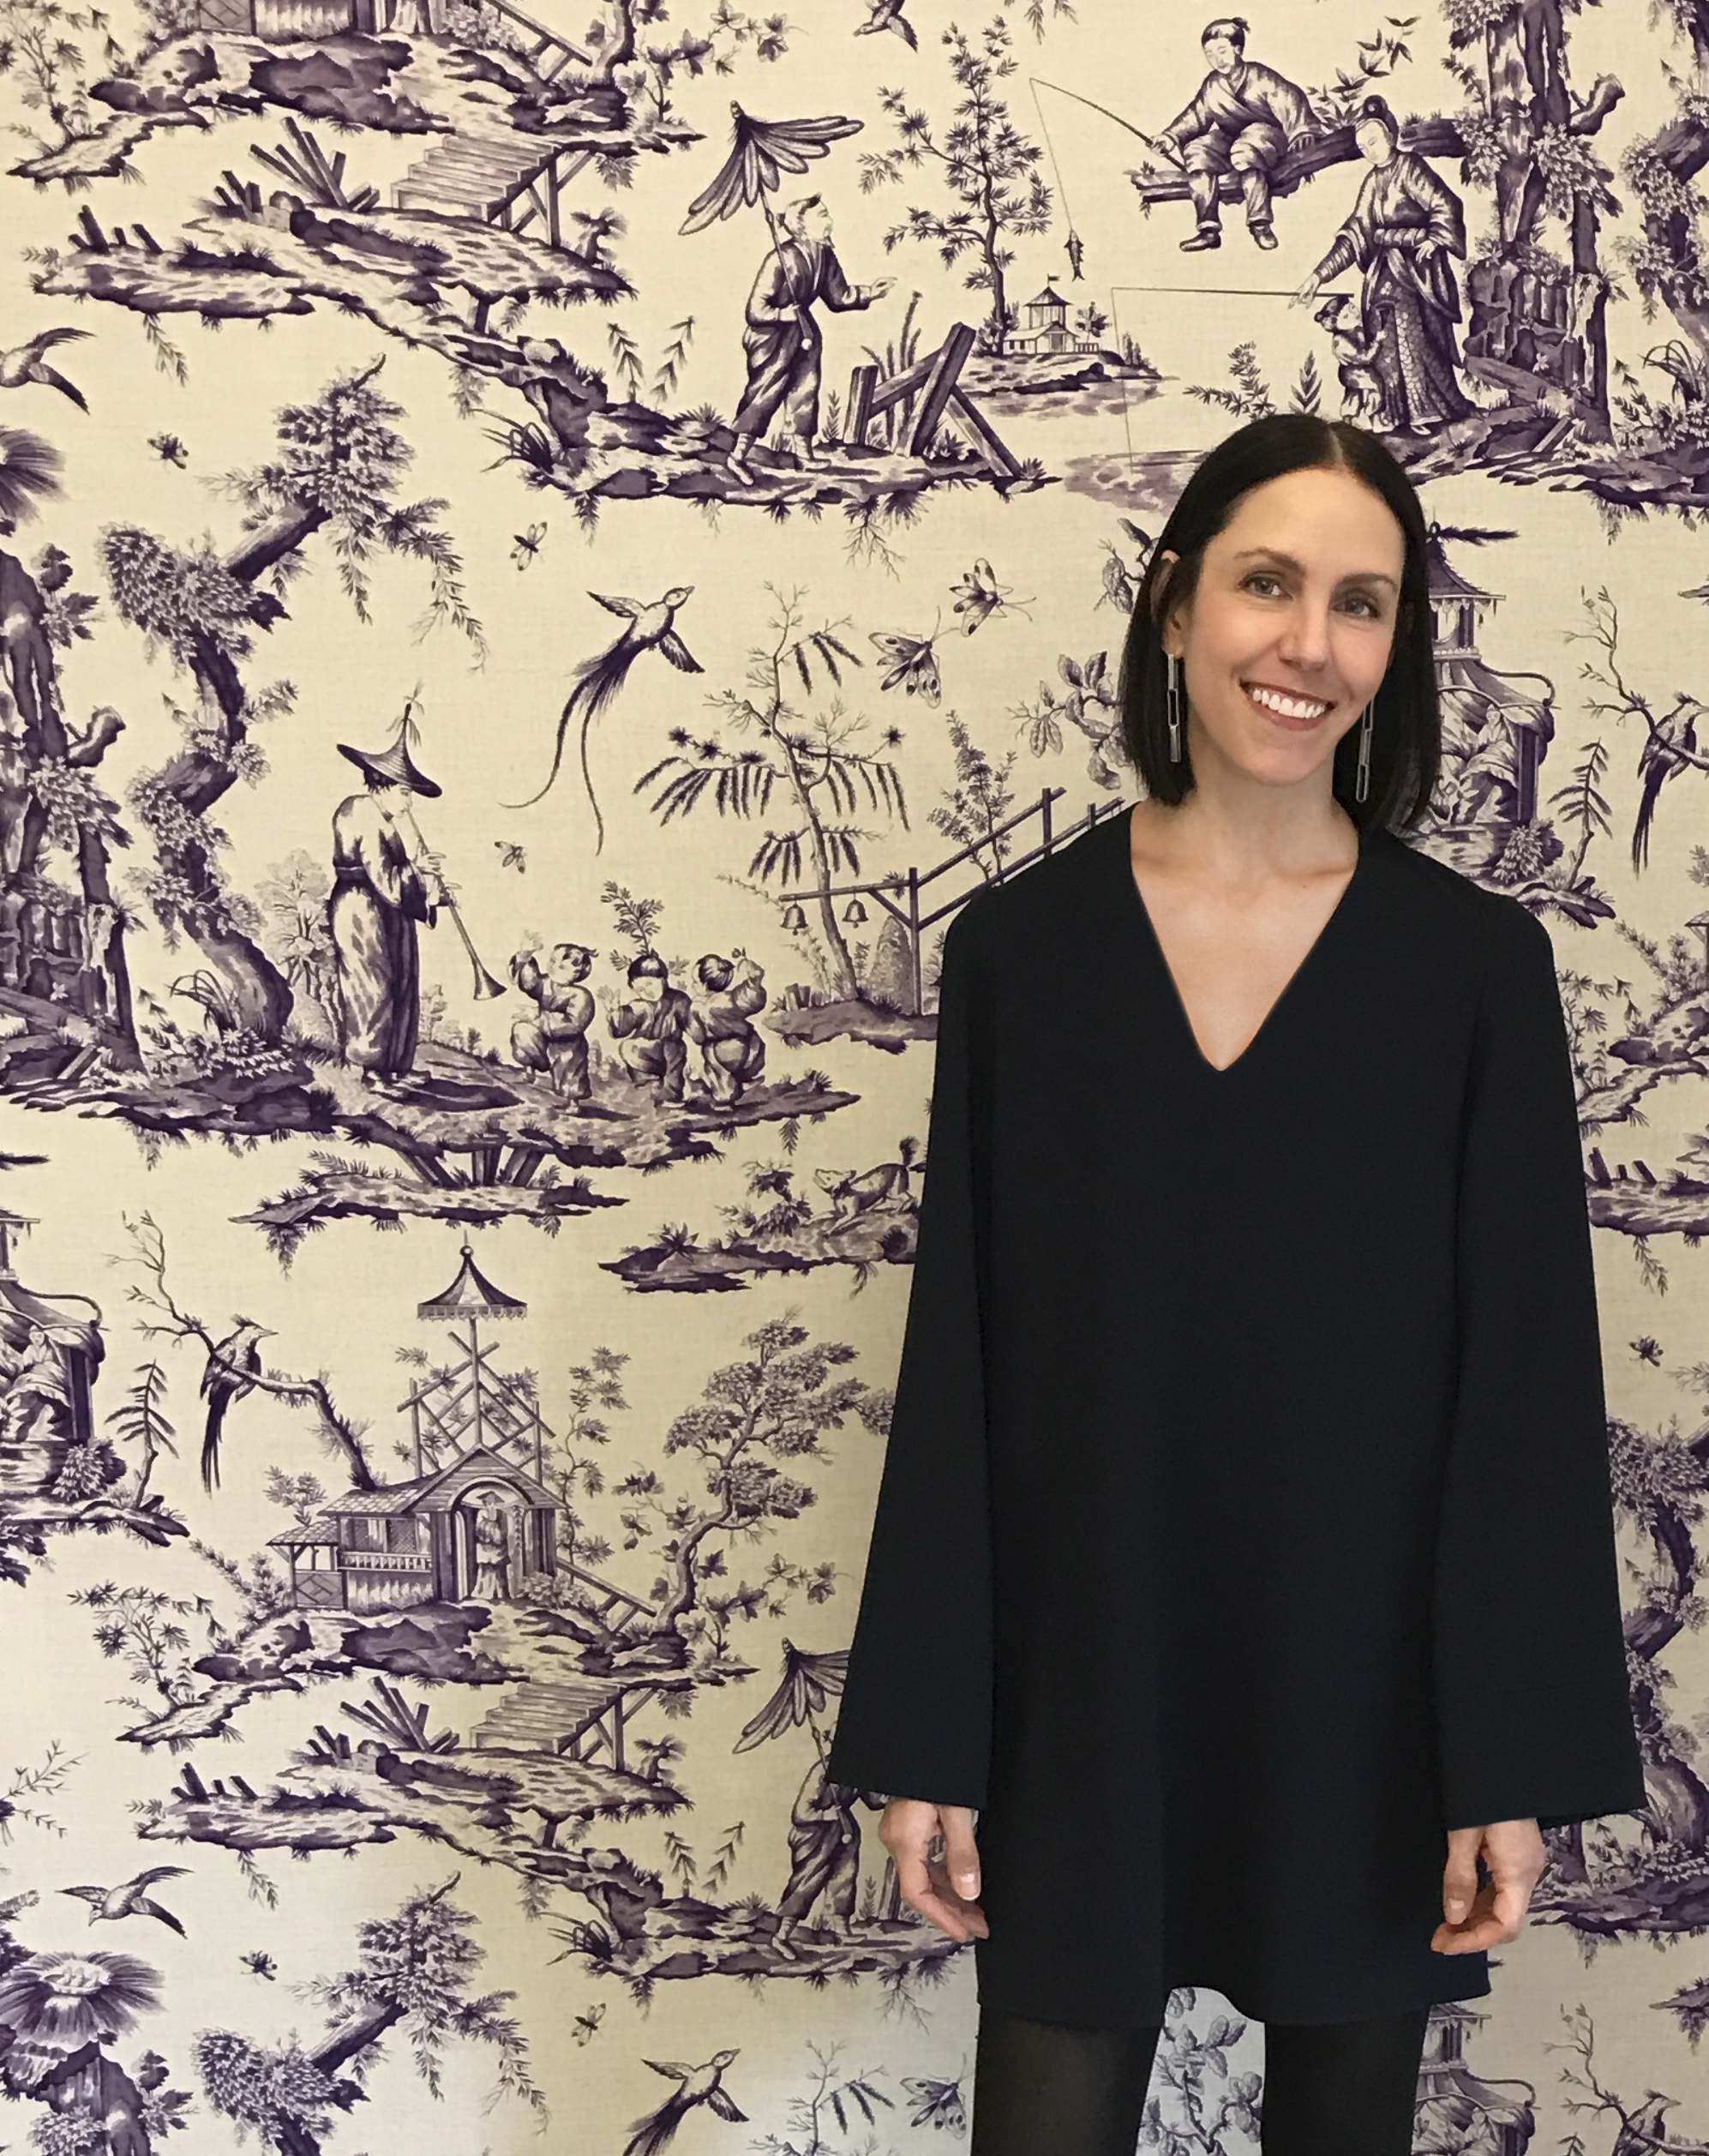 CLOTH & KIND // Meet Schumacher's Director of Design, Pam Marshall